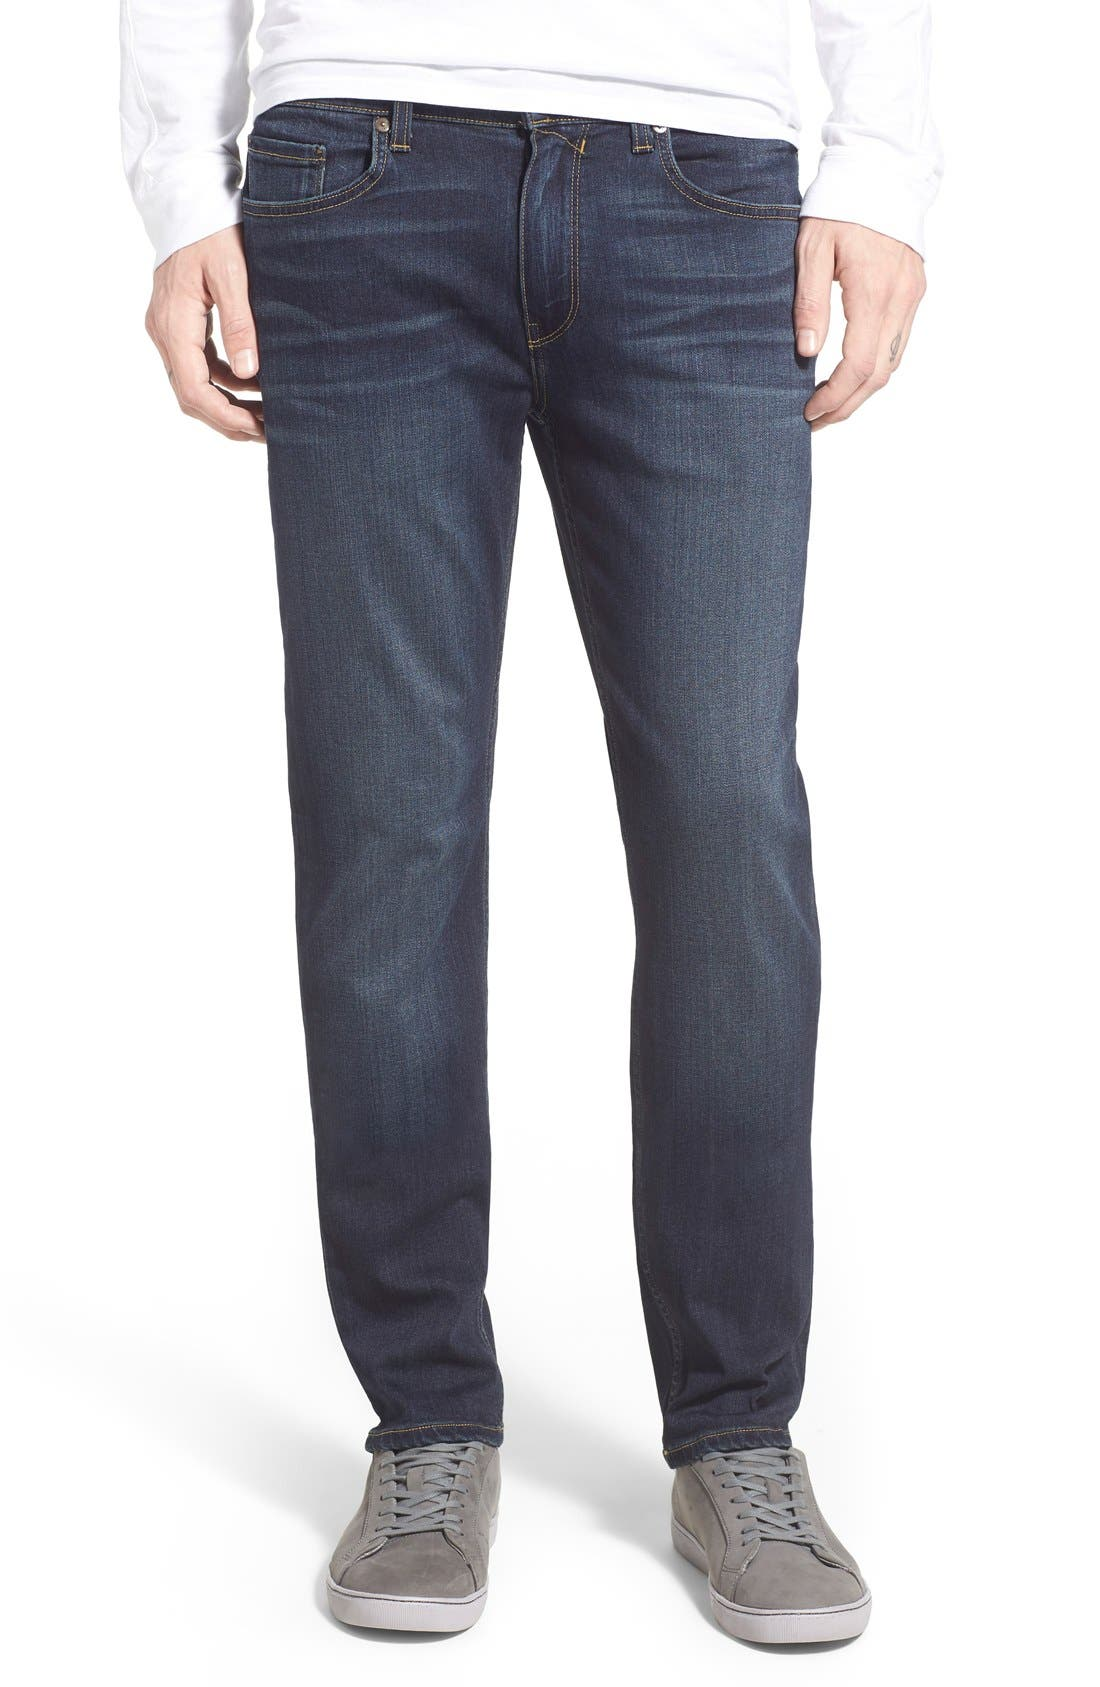 Lennox Slim Fit Jeans,                         Main,                         color, Rigby